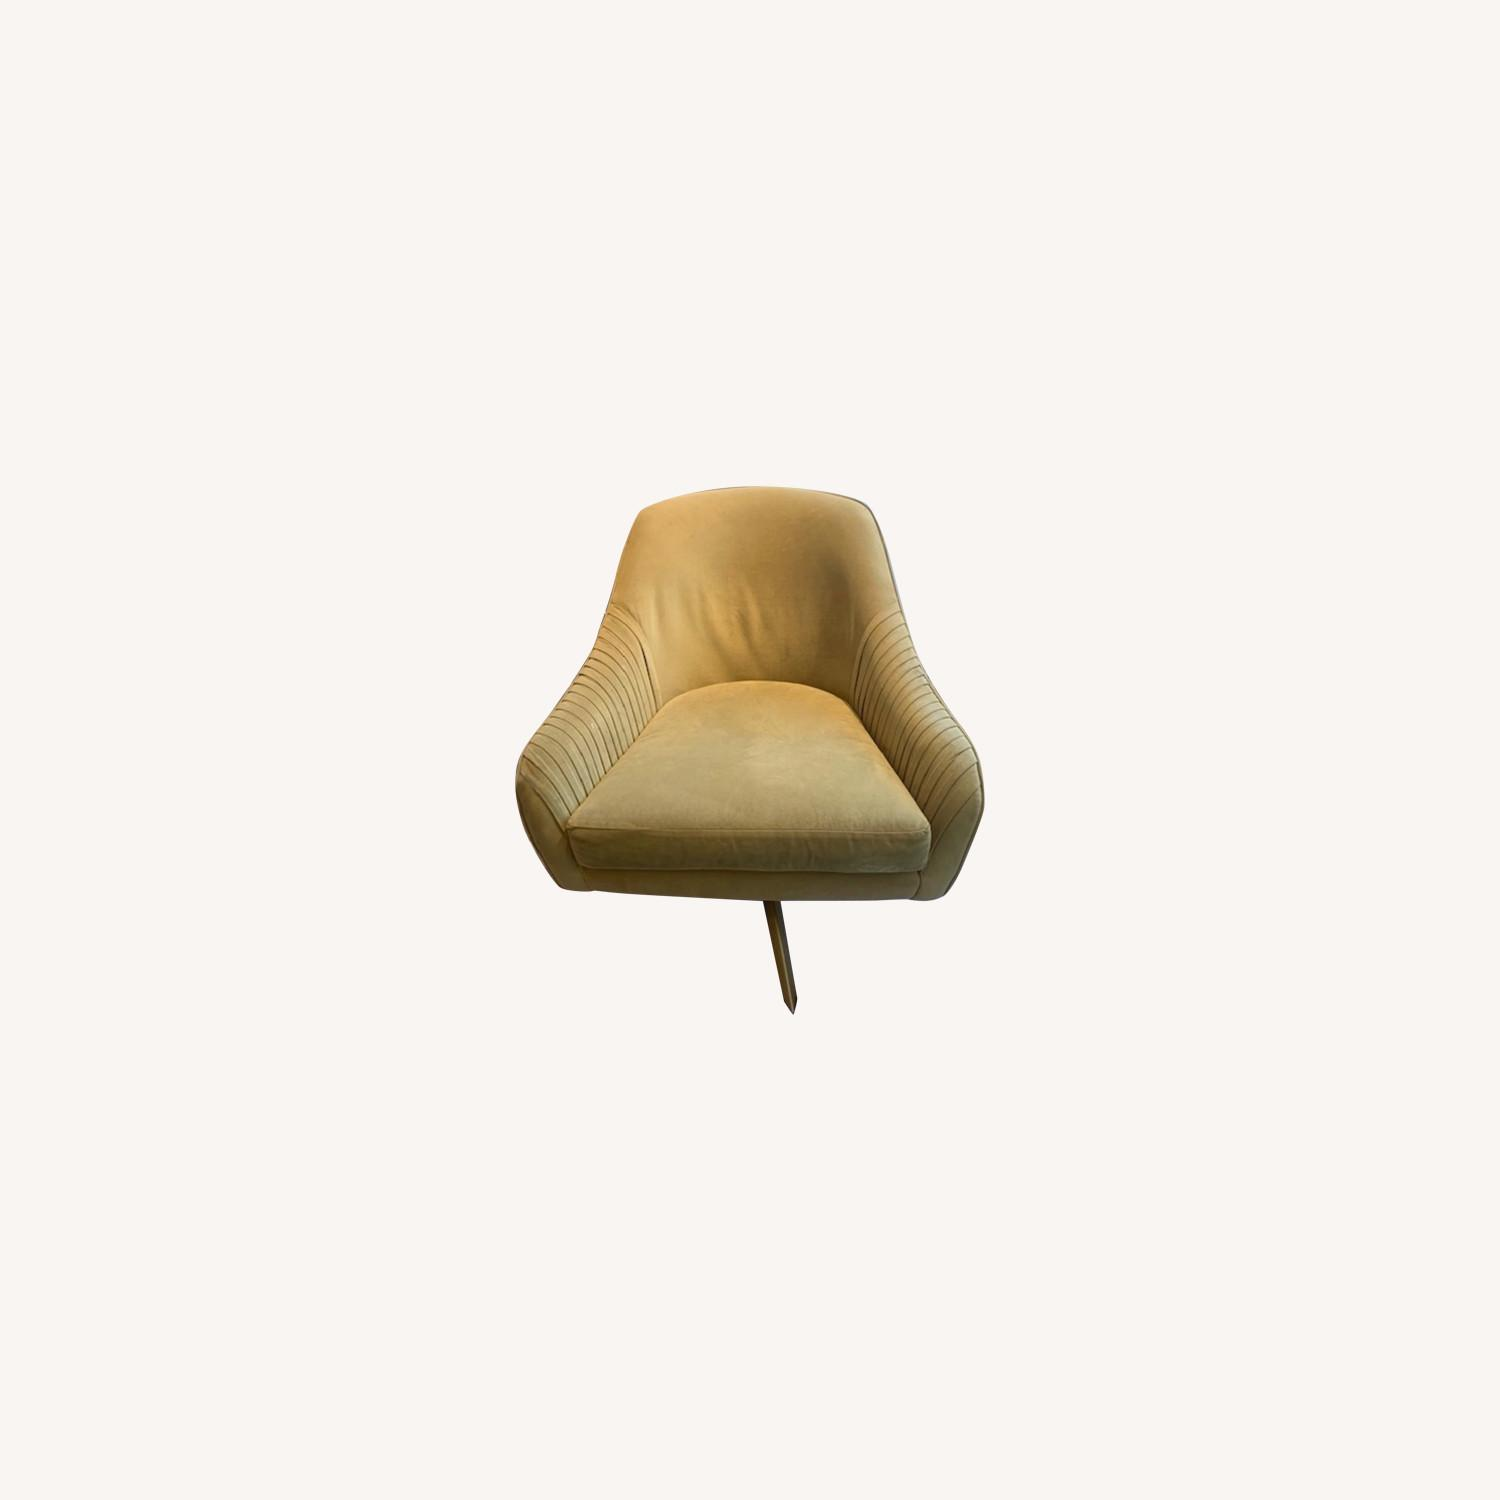 West Elm Swivel Chairs - image-0